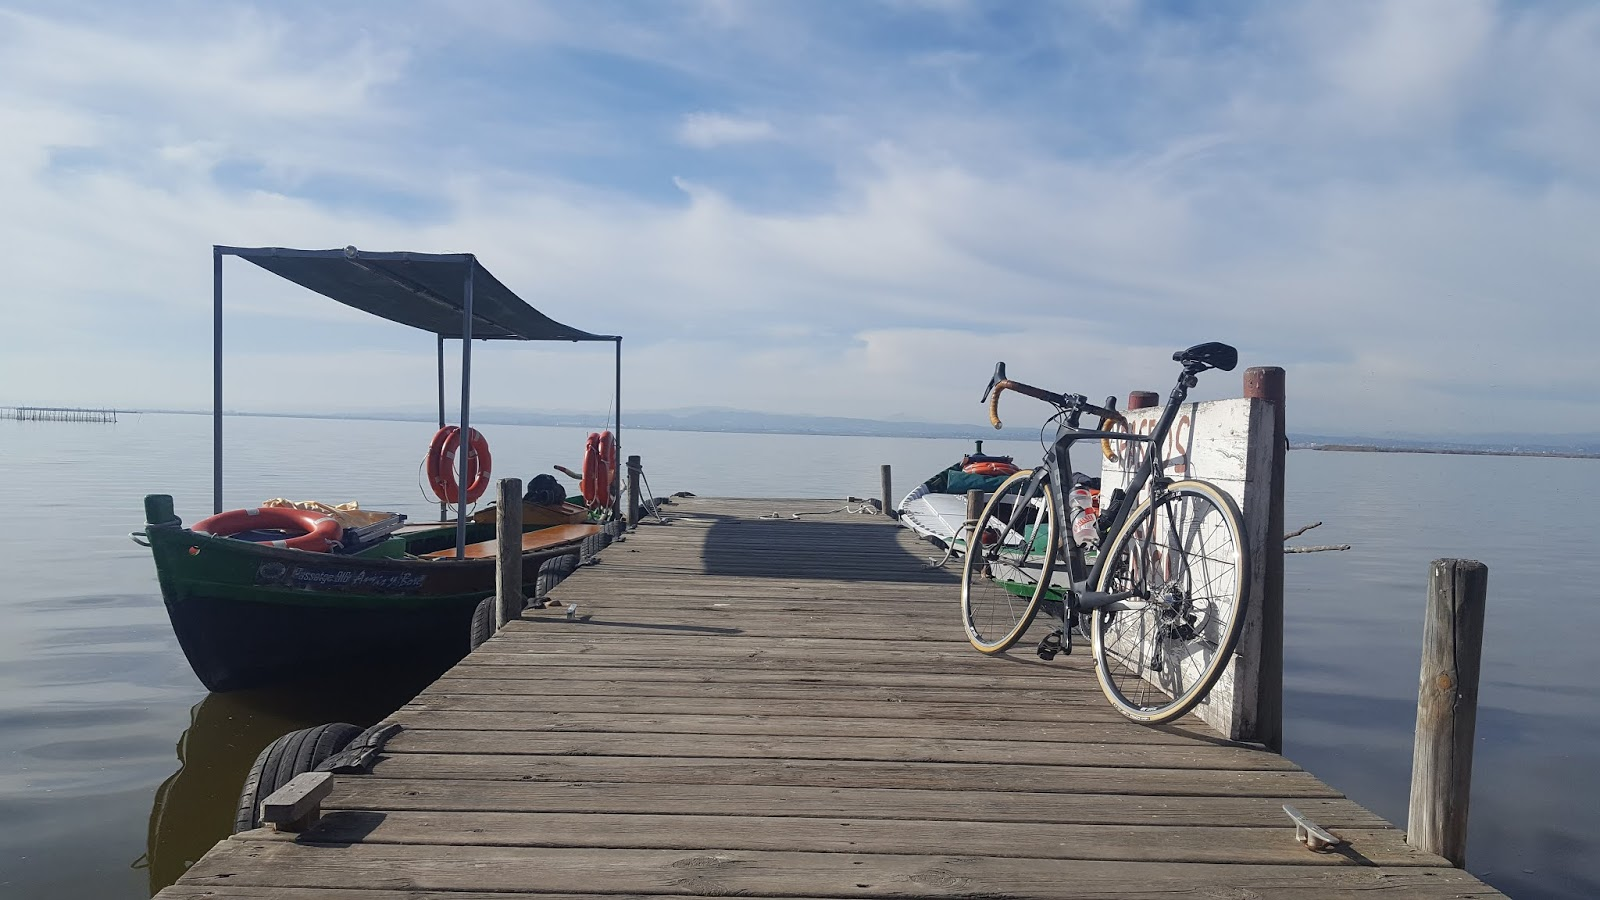 Bicycle and fishing boats on jetty at l'Albufera, Valencia, Spain